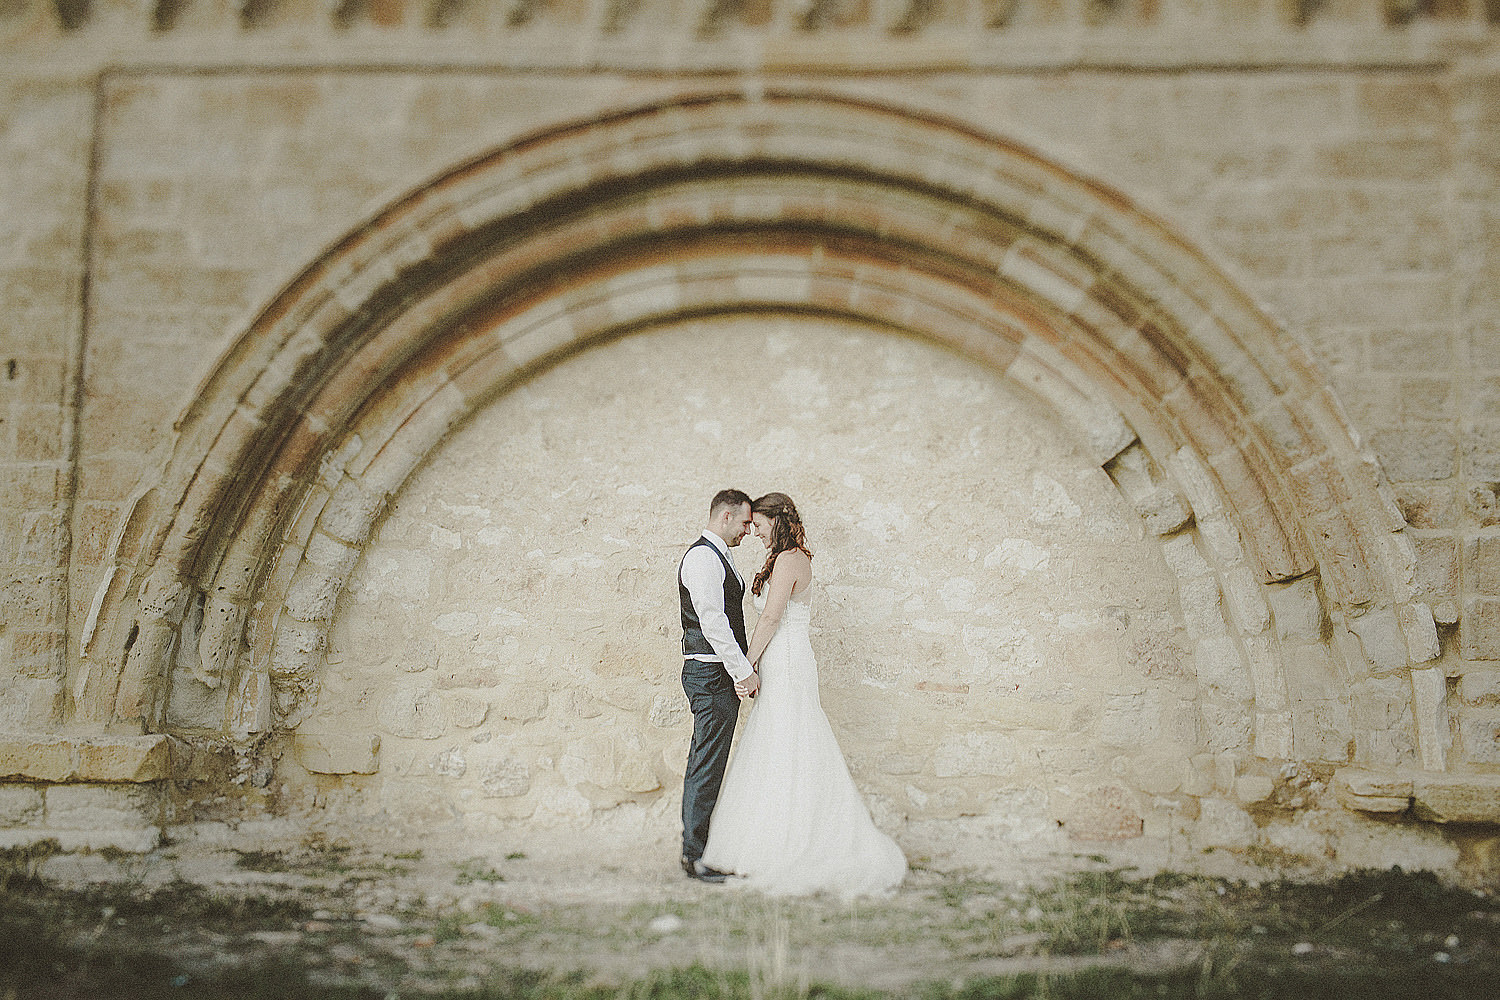 best-of-wedding-photography-2015-107.JPG